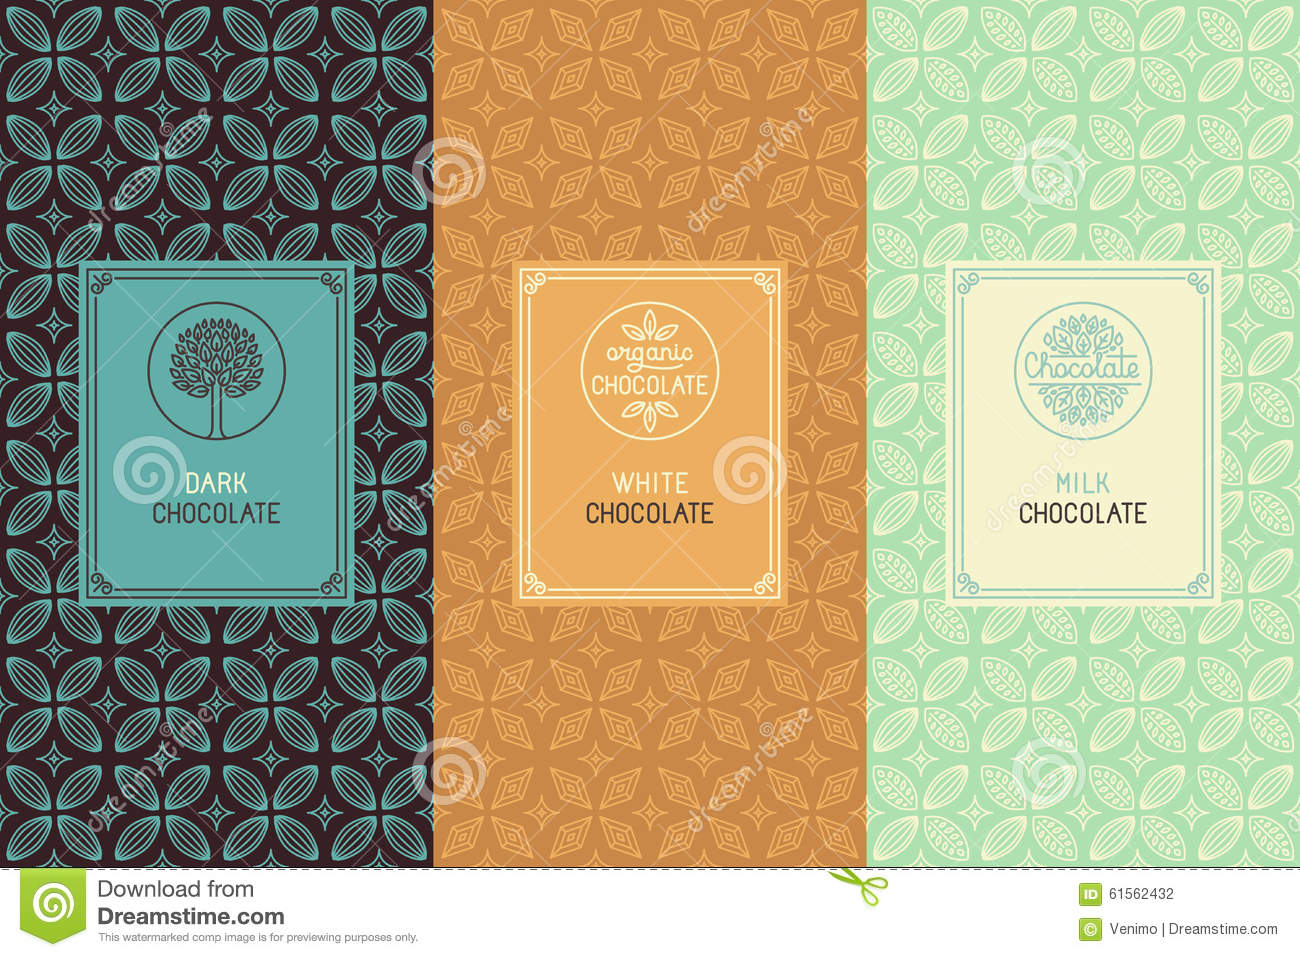 Chocolate Packaging Stock Vector - Image: 61562432